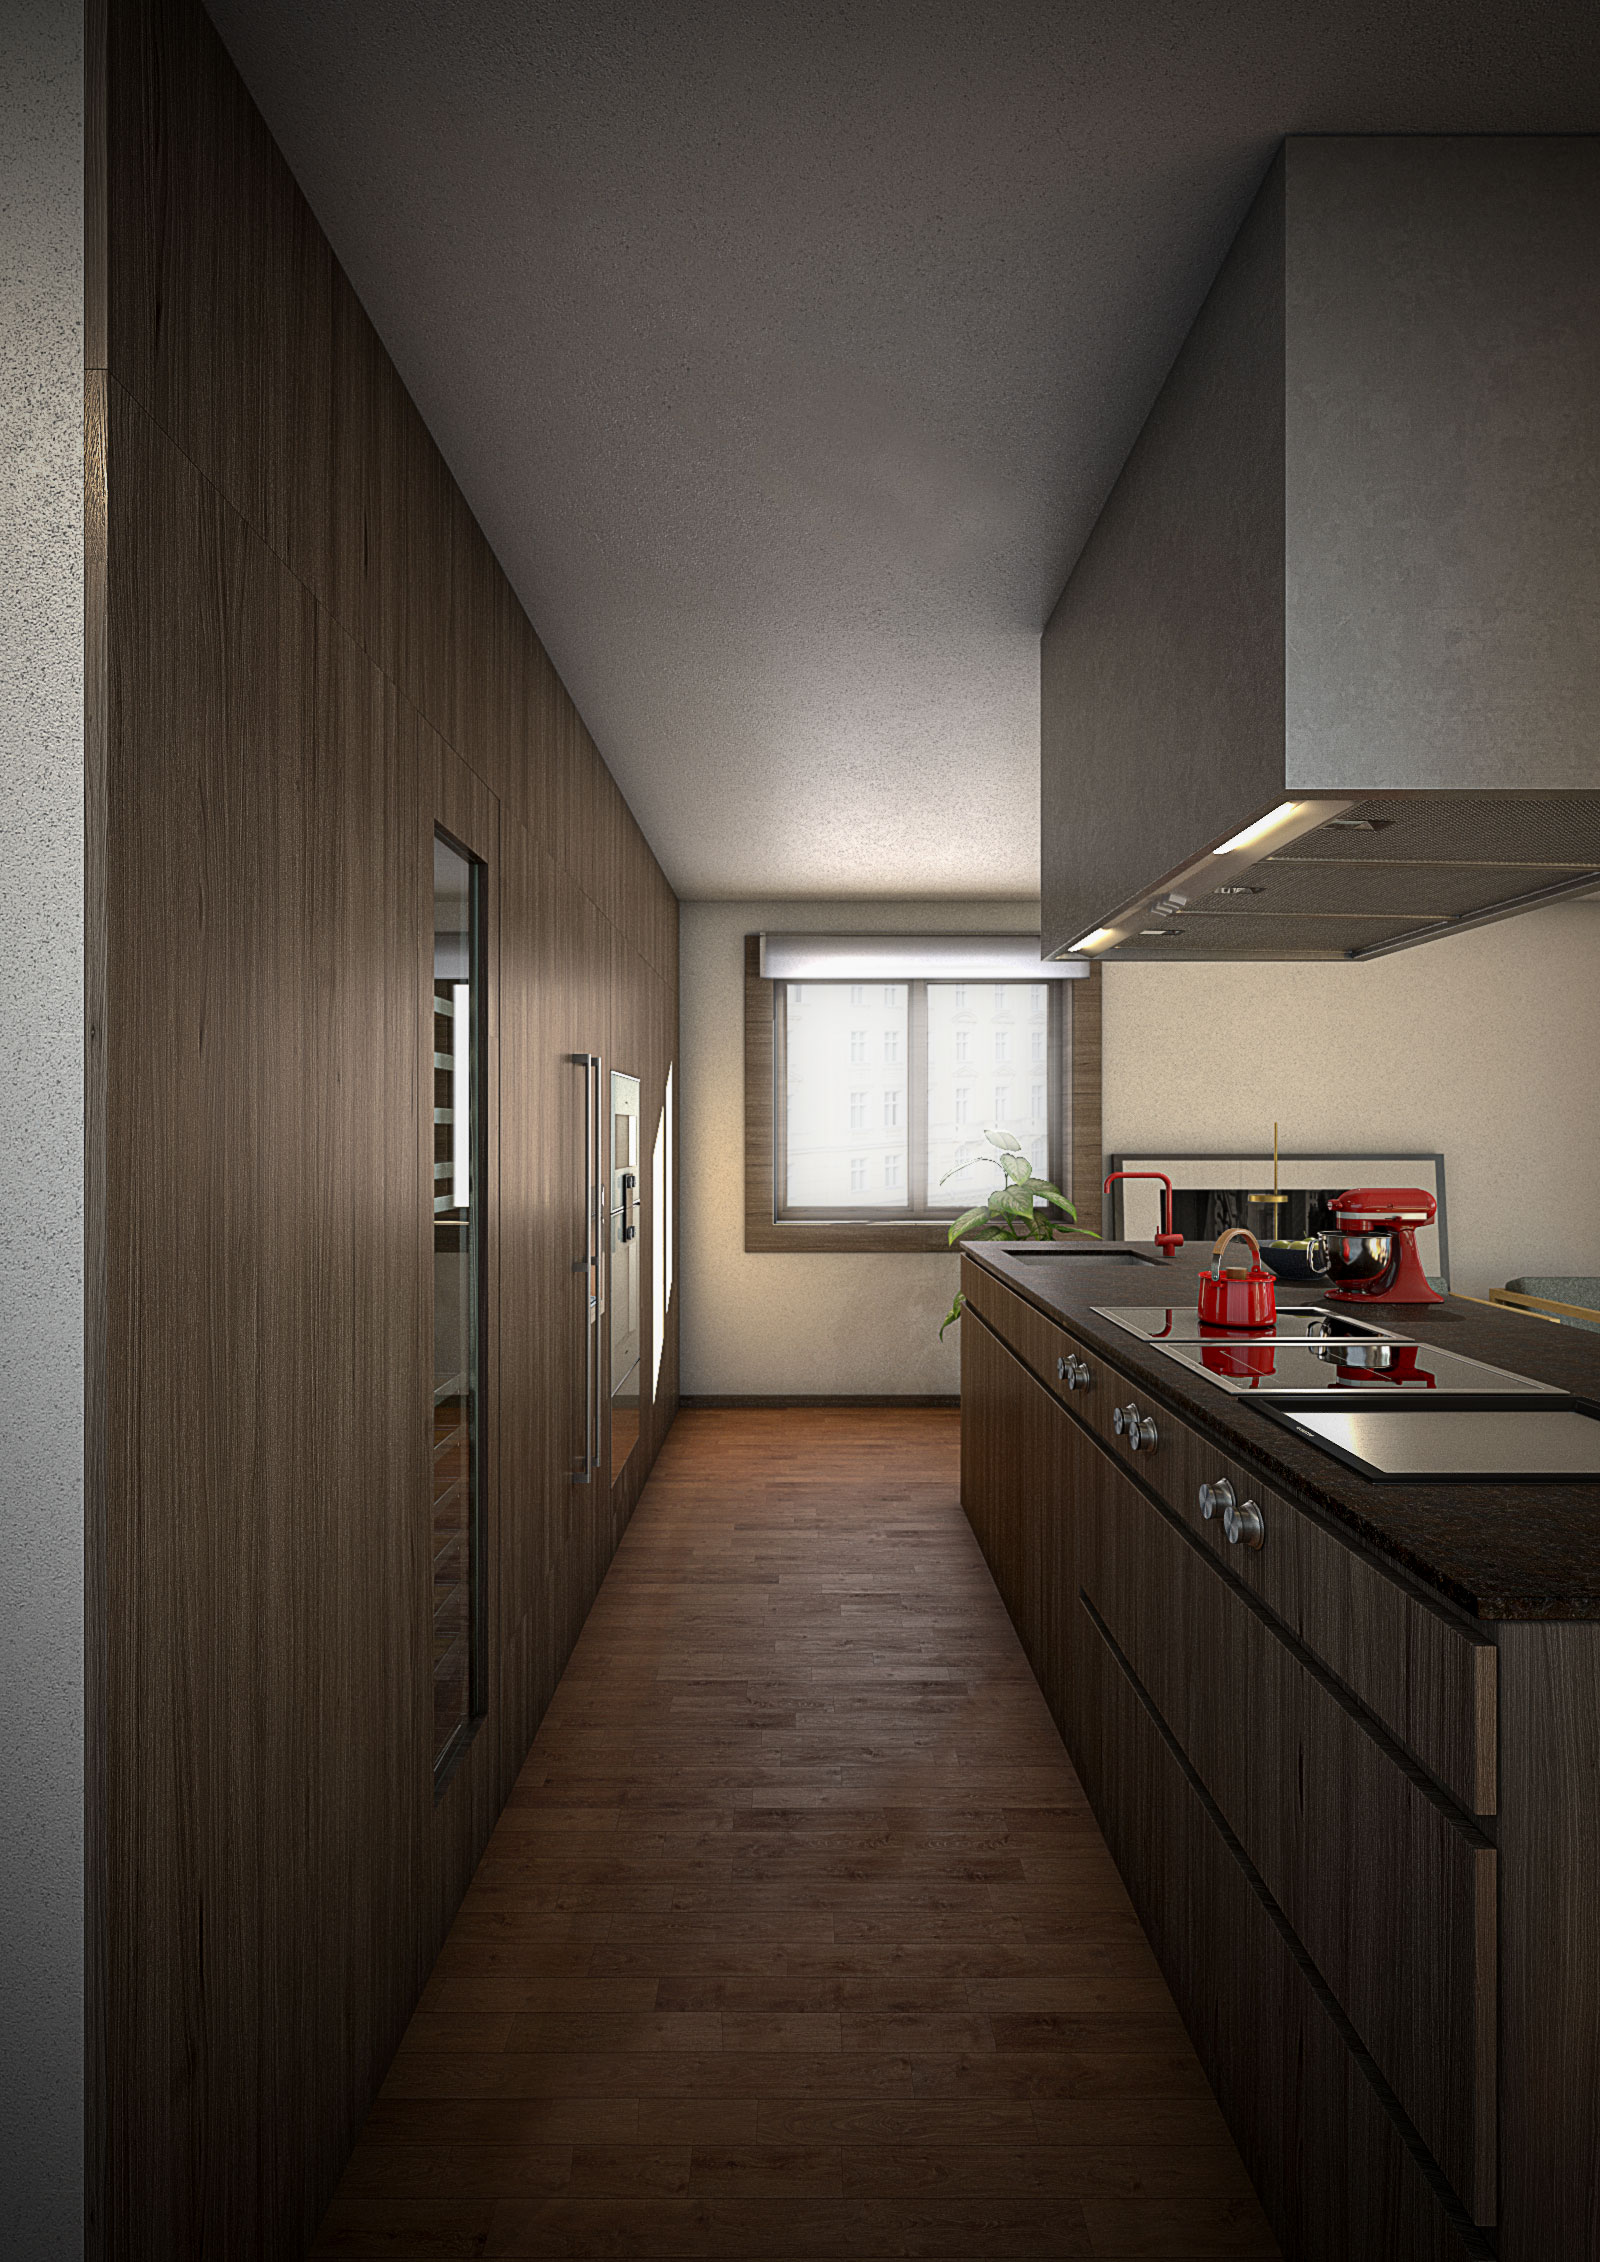 Architectural Visualization for an apartment in Porto. Portugal.